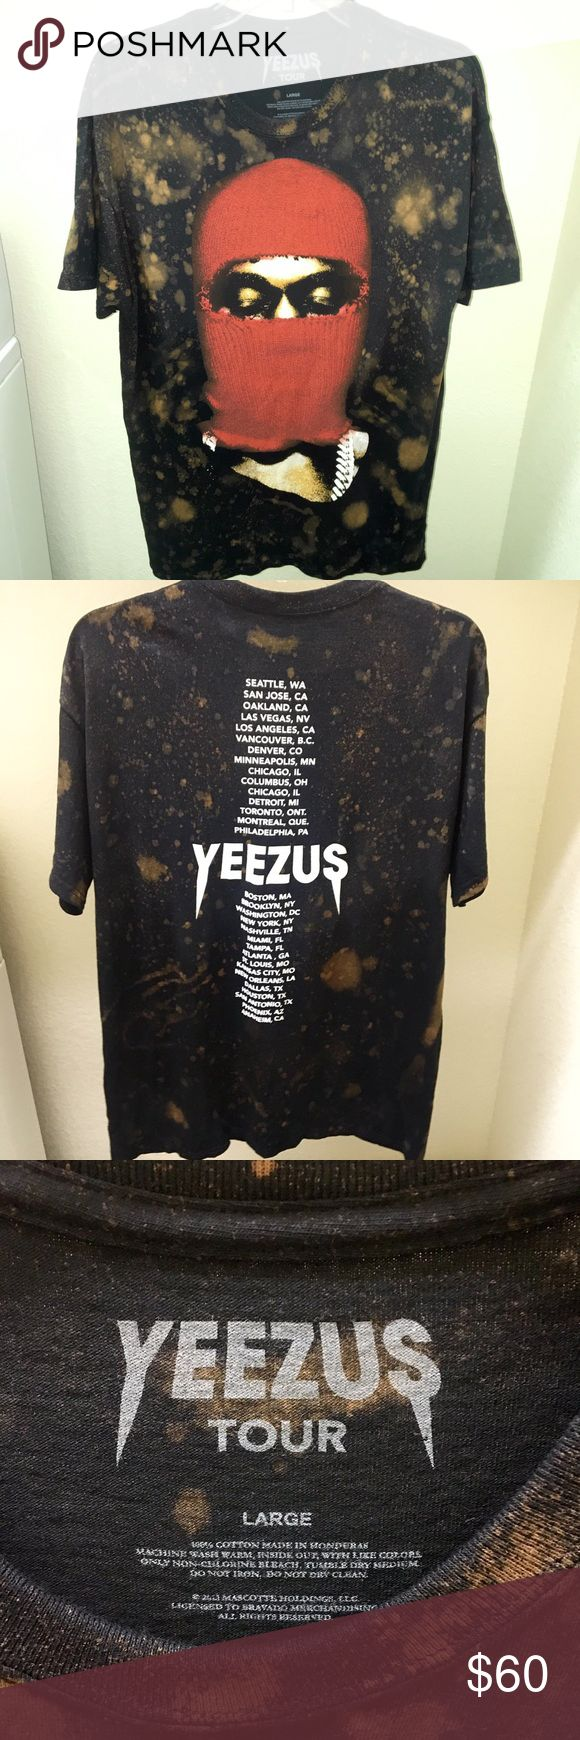 CUSTOM BLEACHED YEEZUS TOUR SHIRT Brand new, never worn. Men's shirt size large. Yeezy Tops Tees - Short Sleeve